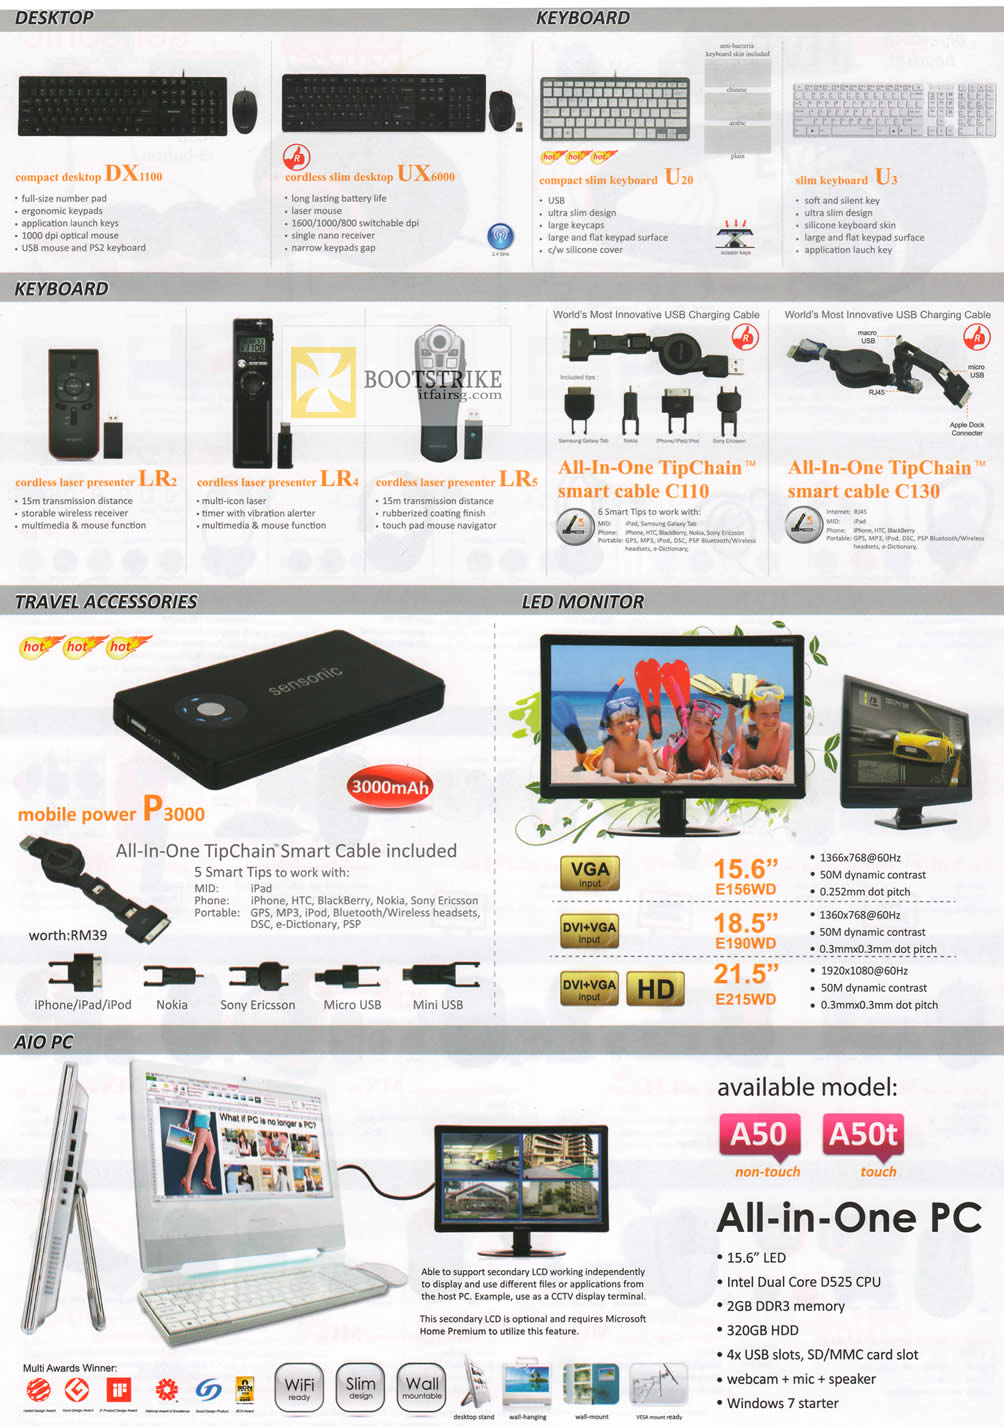 COMEX 2012 price list image brochure of Mclogic Sensonic Keyboard, Laser Presenter, Tipchair, AIO Desktop PC